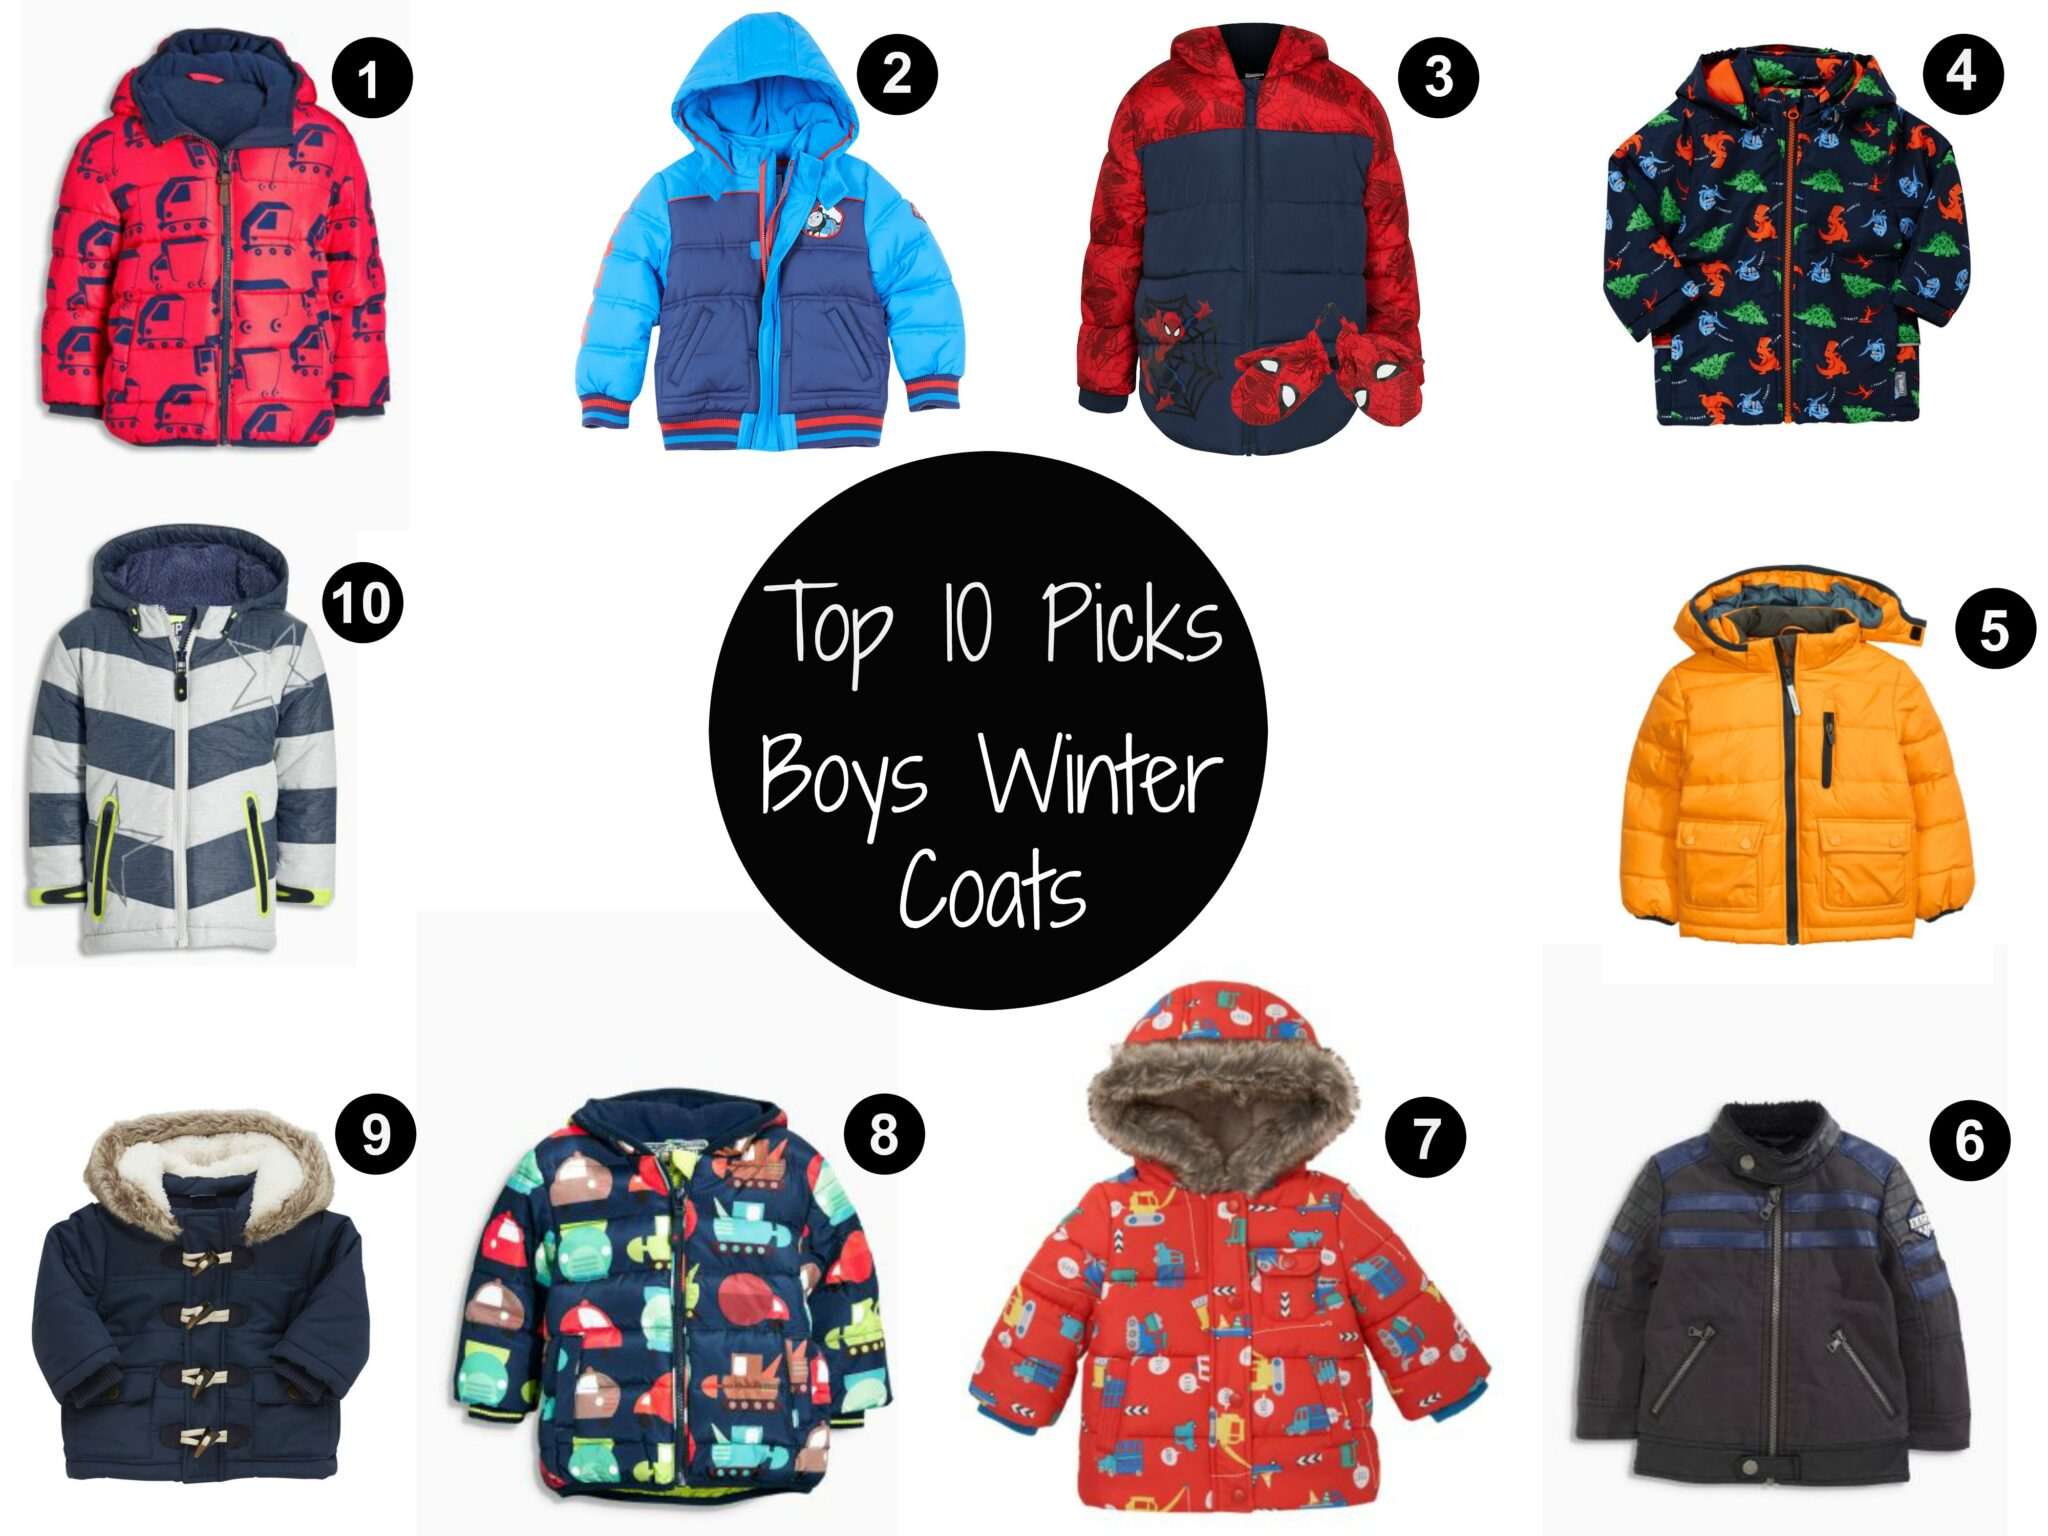 Boys Winter Coats - Top 10 Picks - Sticky Mud and Belly Laughs